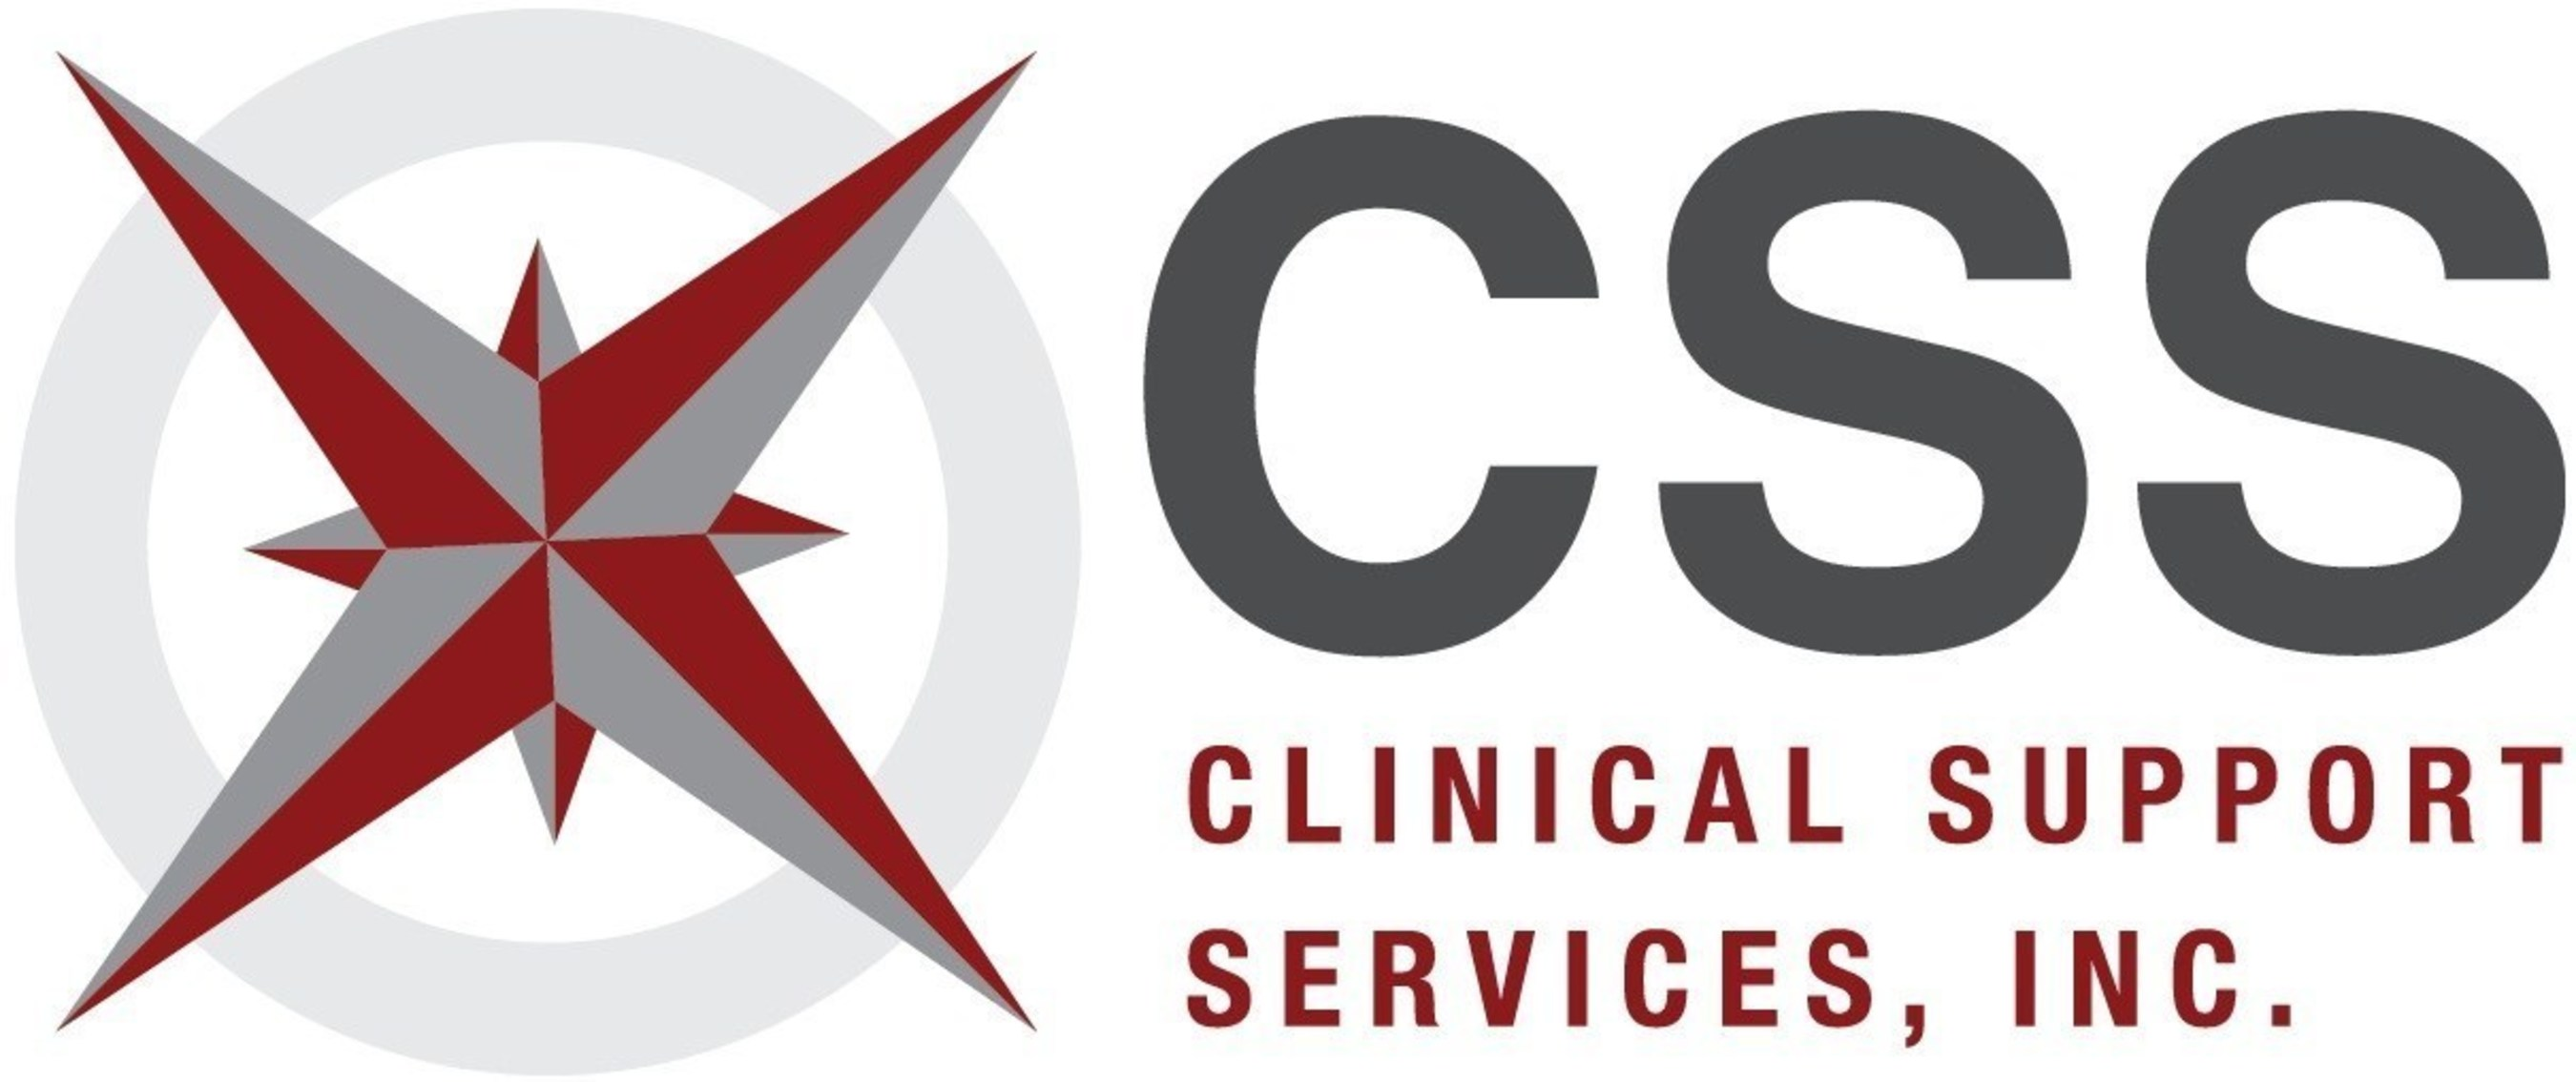 Clinical Support Services, Inc Verifies That Increased. Phd Programs In Educational Leadership. How Much Does It Cost To Install Solar Panels. Hollister Online Shop Deutschland. Open Source Data Warehouse Social Media Quiz. Executive Career Coaches Service Now Software. Lasik Eye Surgery Boca Raton. Window Repair Austin Tx Tulsa County Election. Security Systems Santa Maria